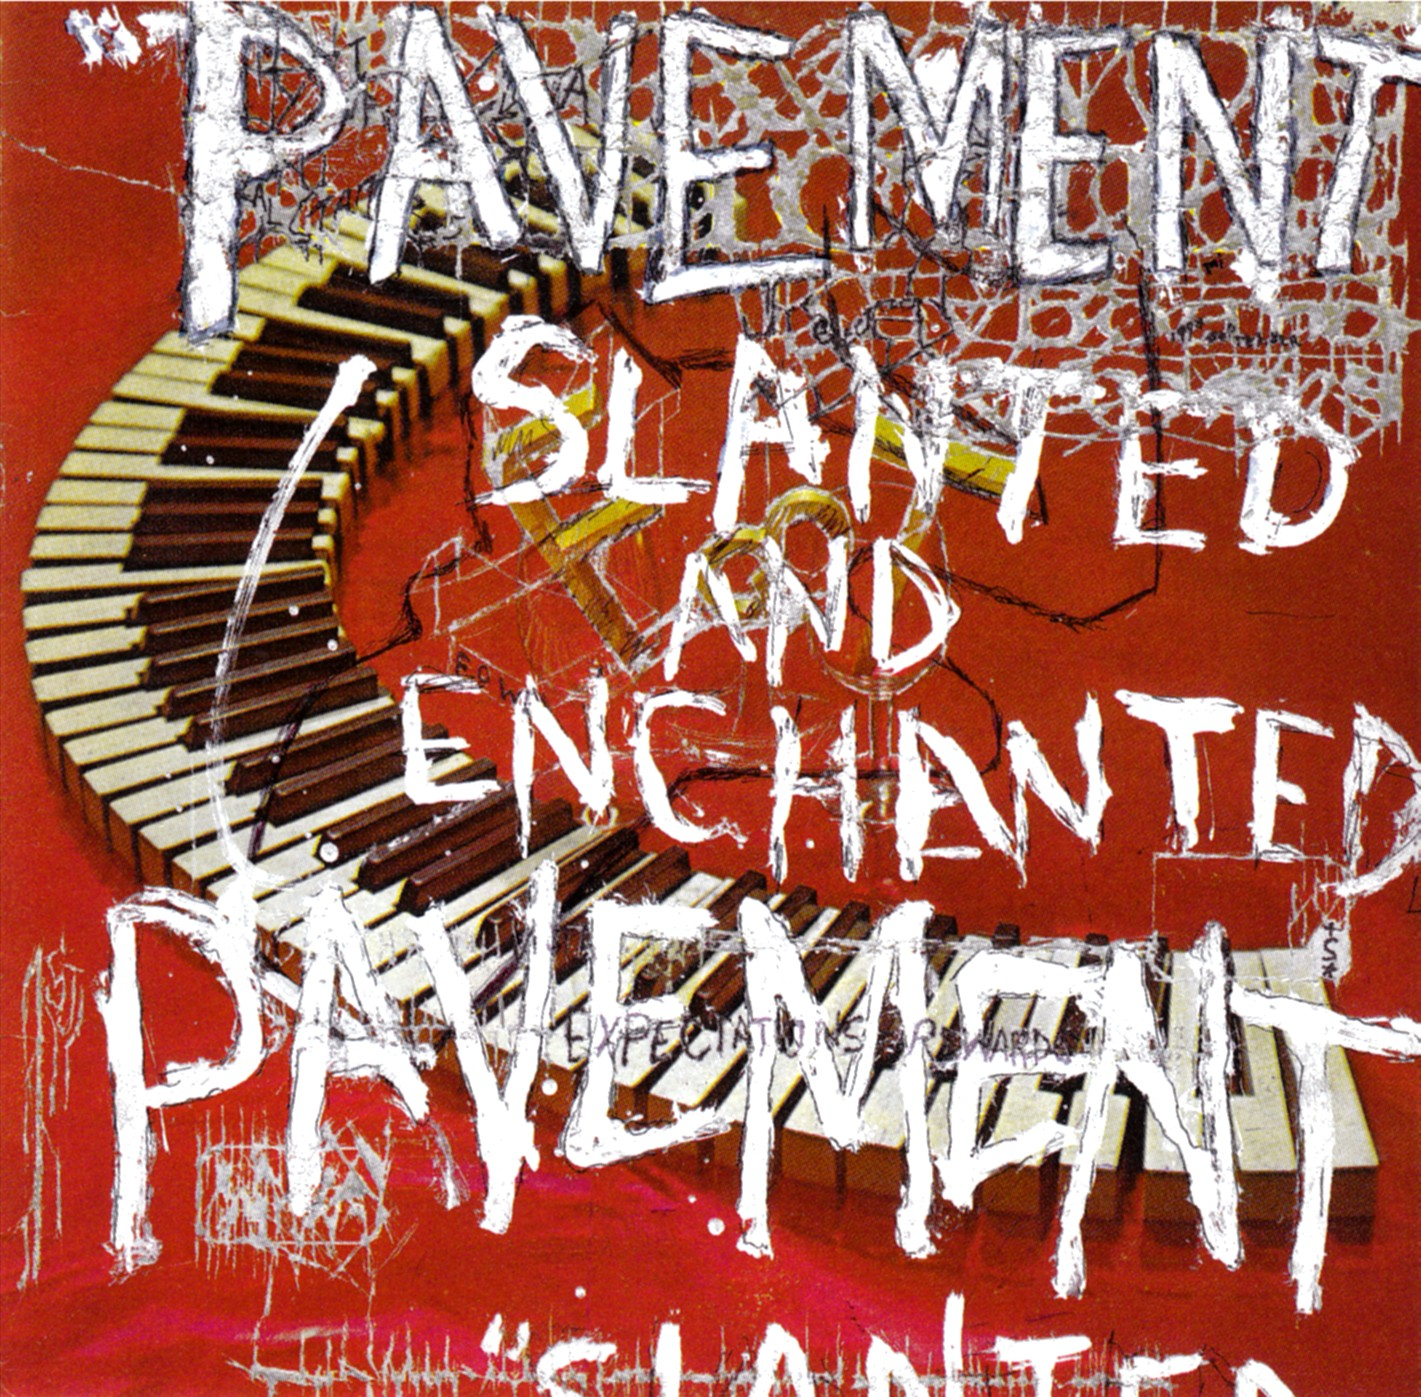 Pavement Set To Reunite For Two Shows In 2020